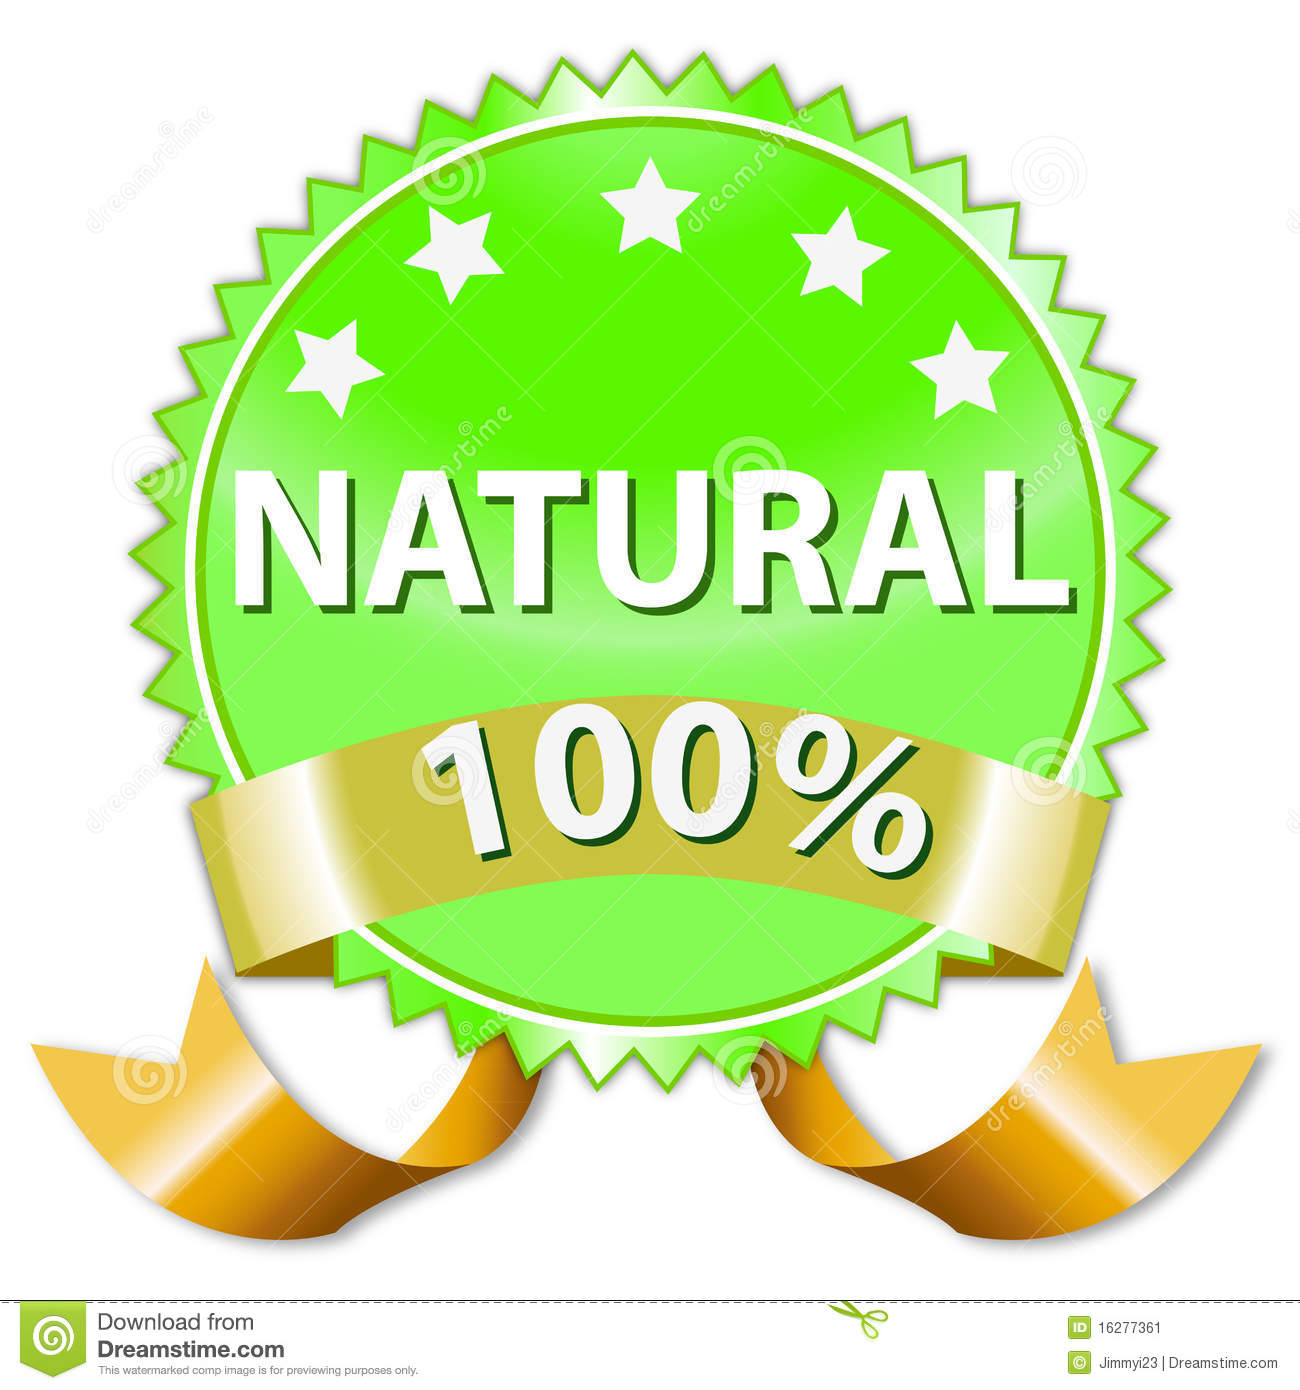 natural product or food label stock vector illustration of graphic